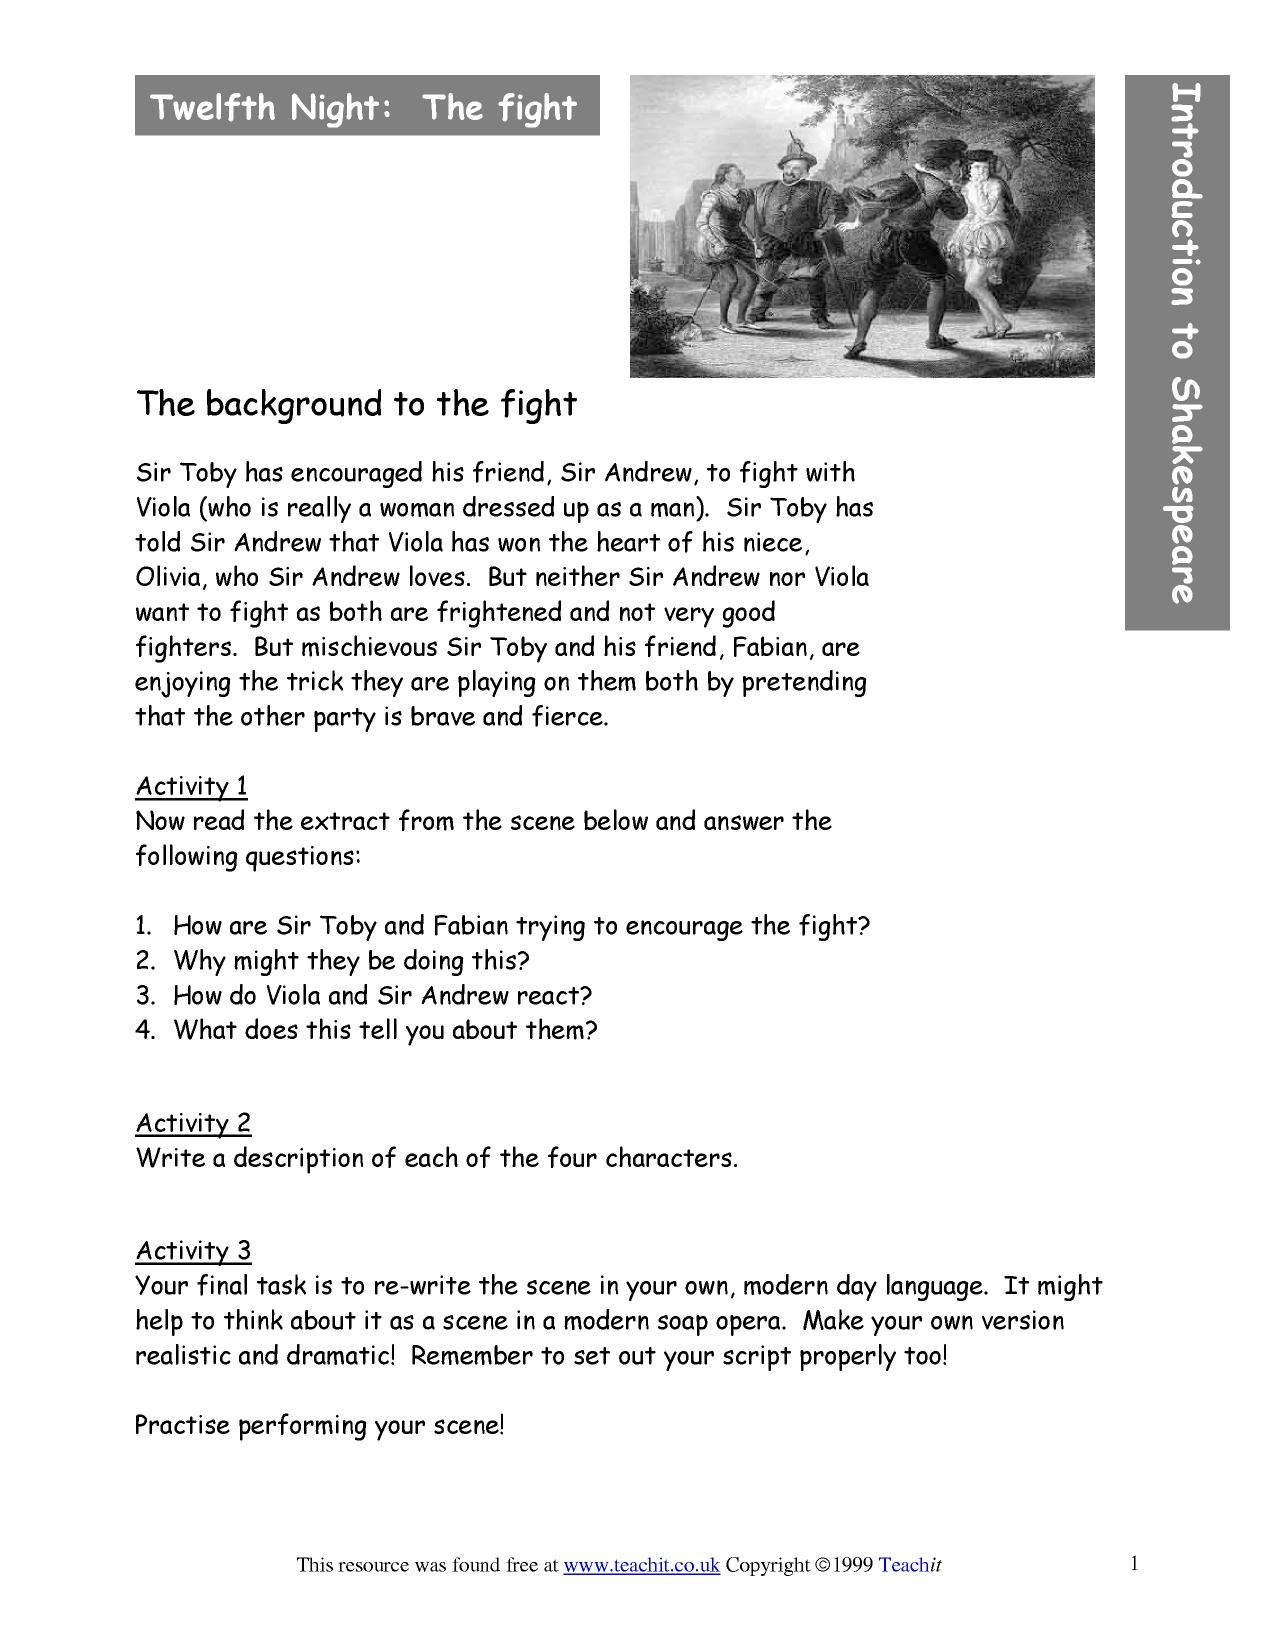 shakespeare twelfth night essay questions Despite twelfth night's comic action and happy ending, shakespeare paints an ambiguous picture of romance and infatuation in the playlove is generally represented as something sudden and irresistible, something that attacks its victim from the outside in a fashion similar to a disease.